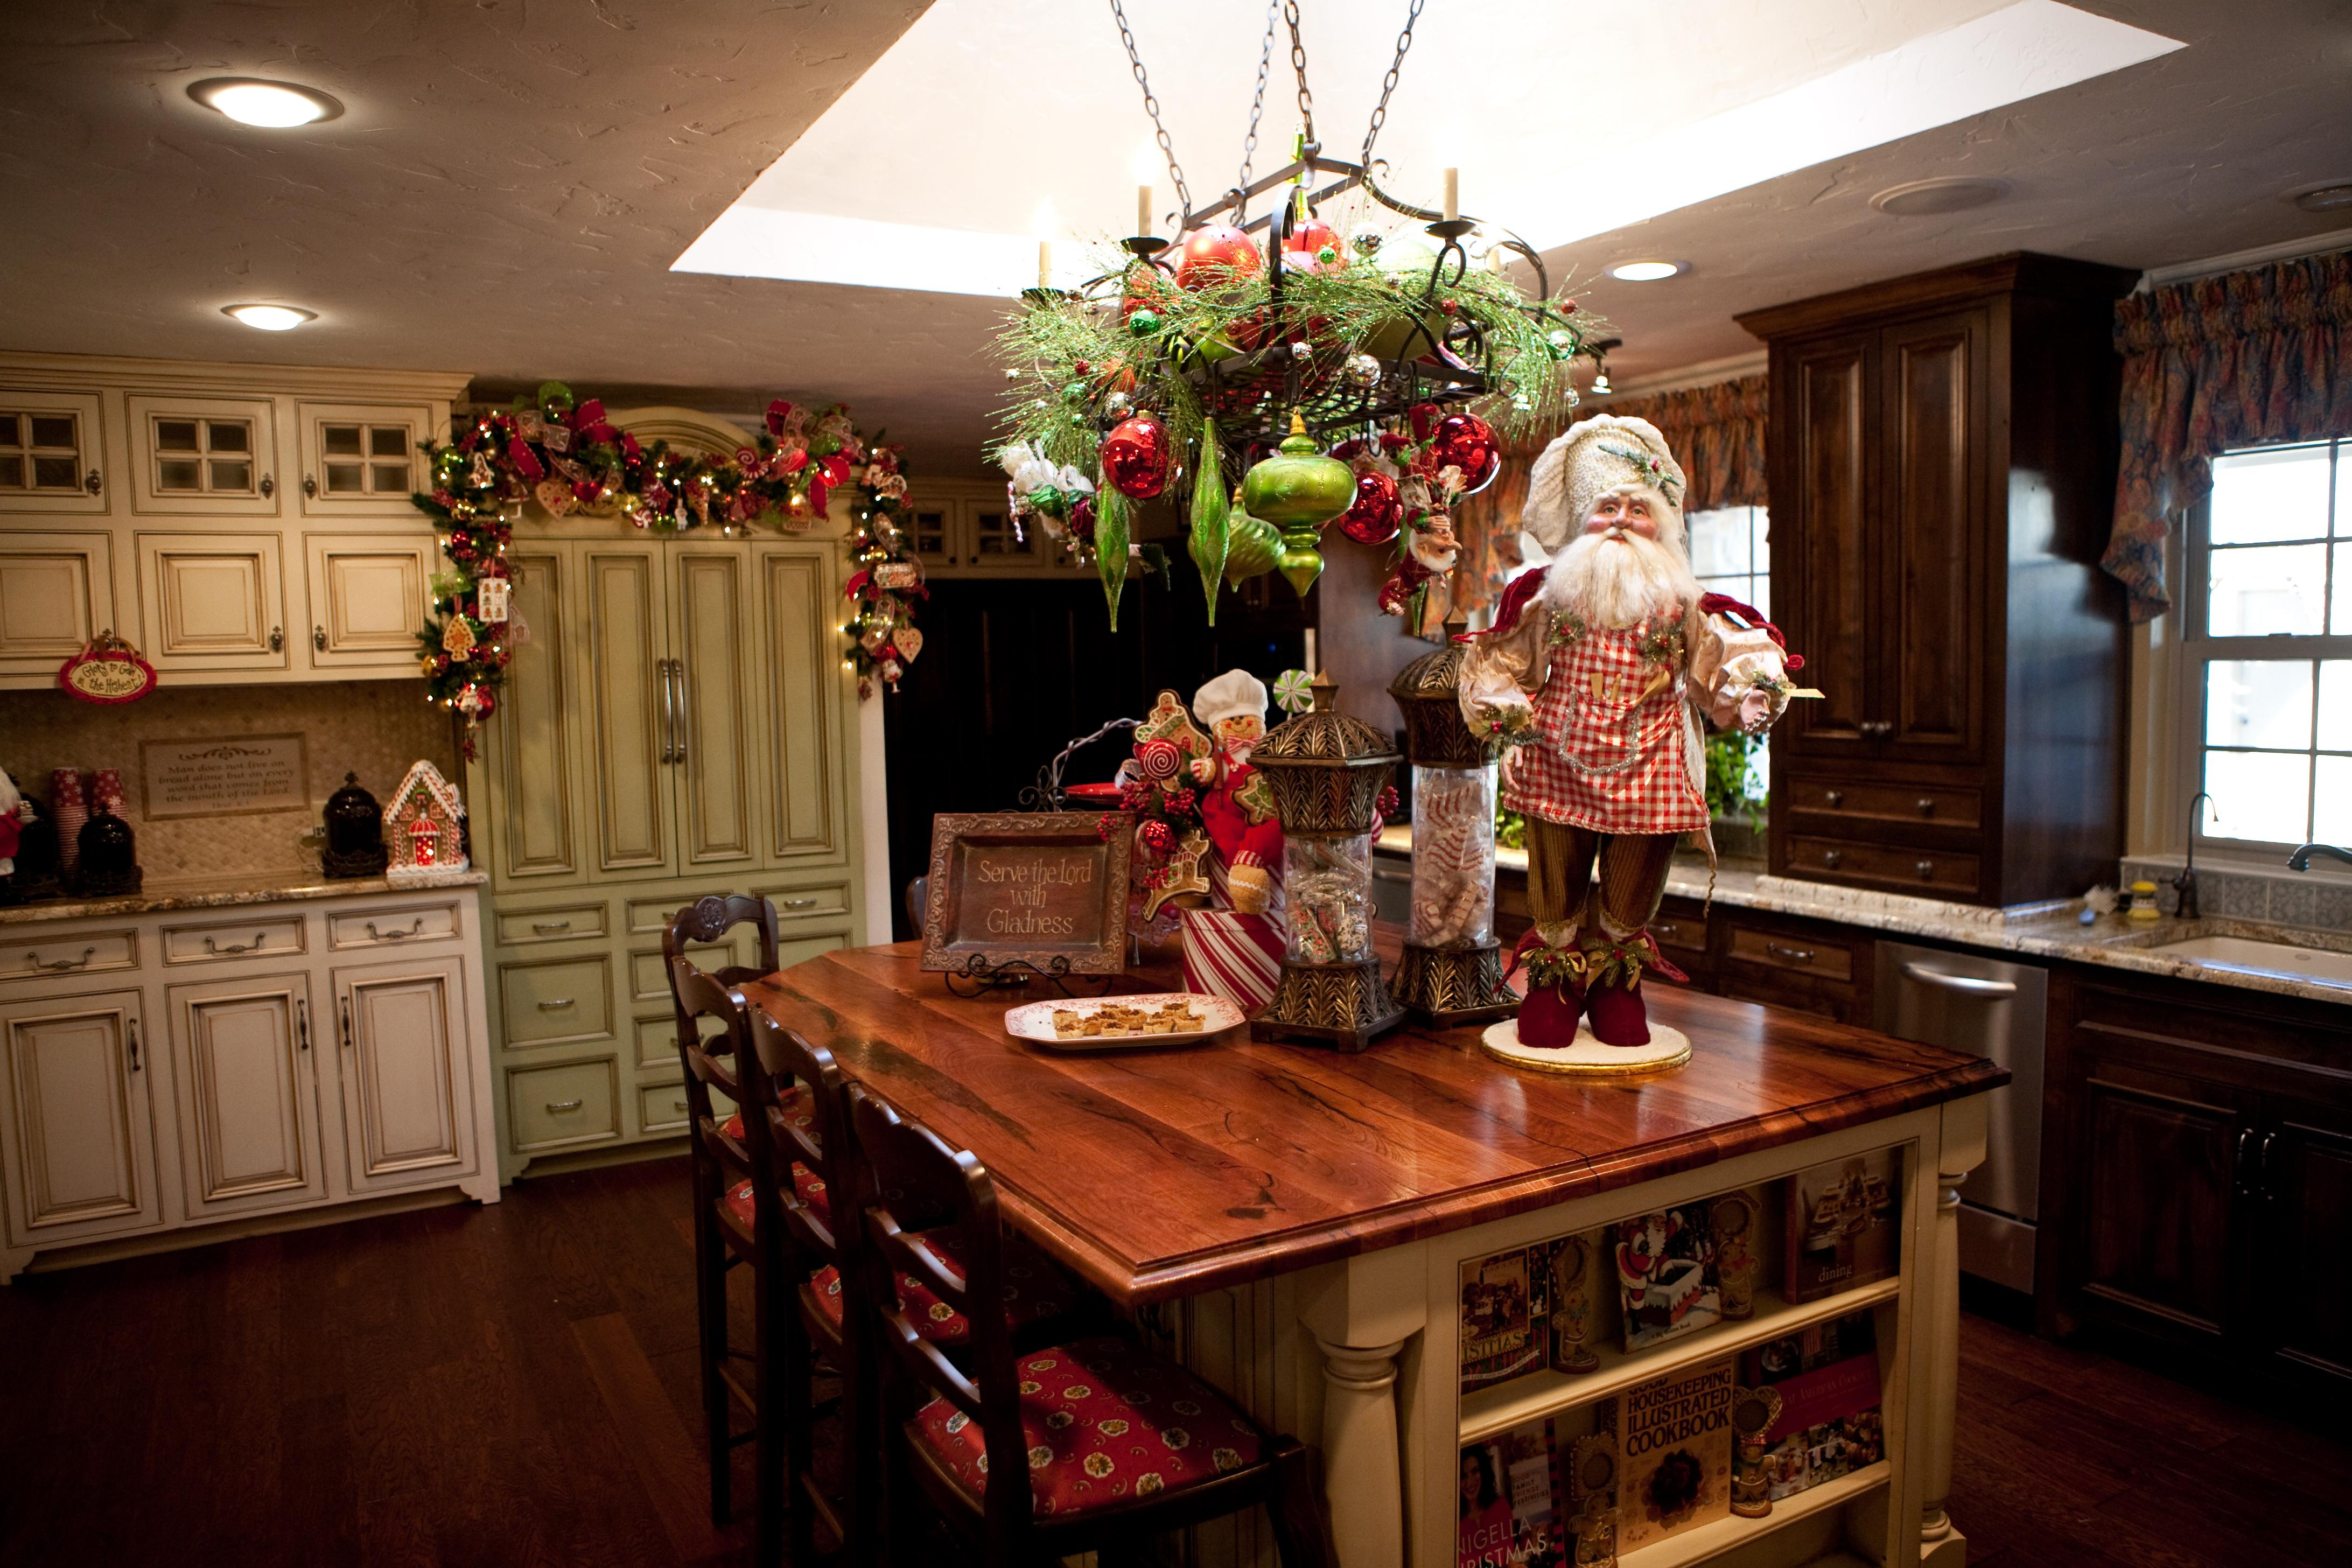 kitchen island Christmas decor in Kitchen Christmas Decoration Ideas | LovelySpaces.com